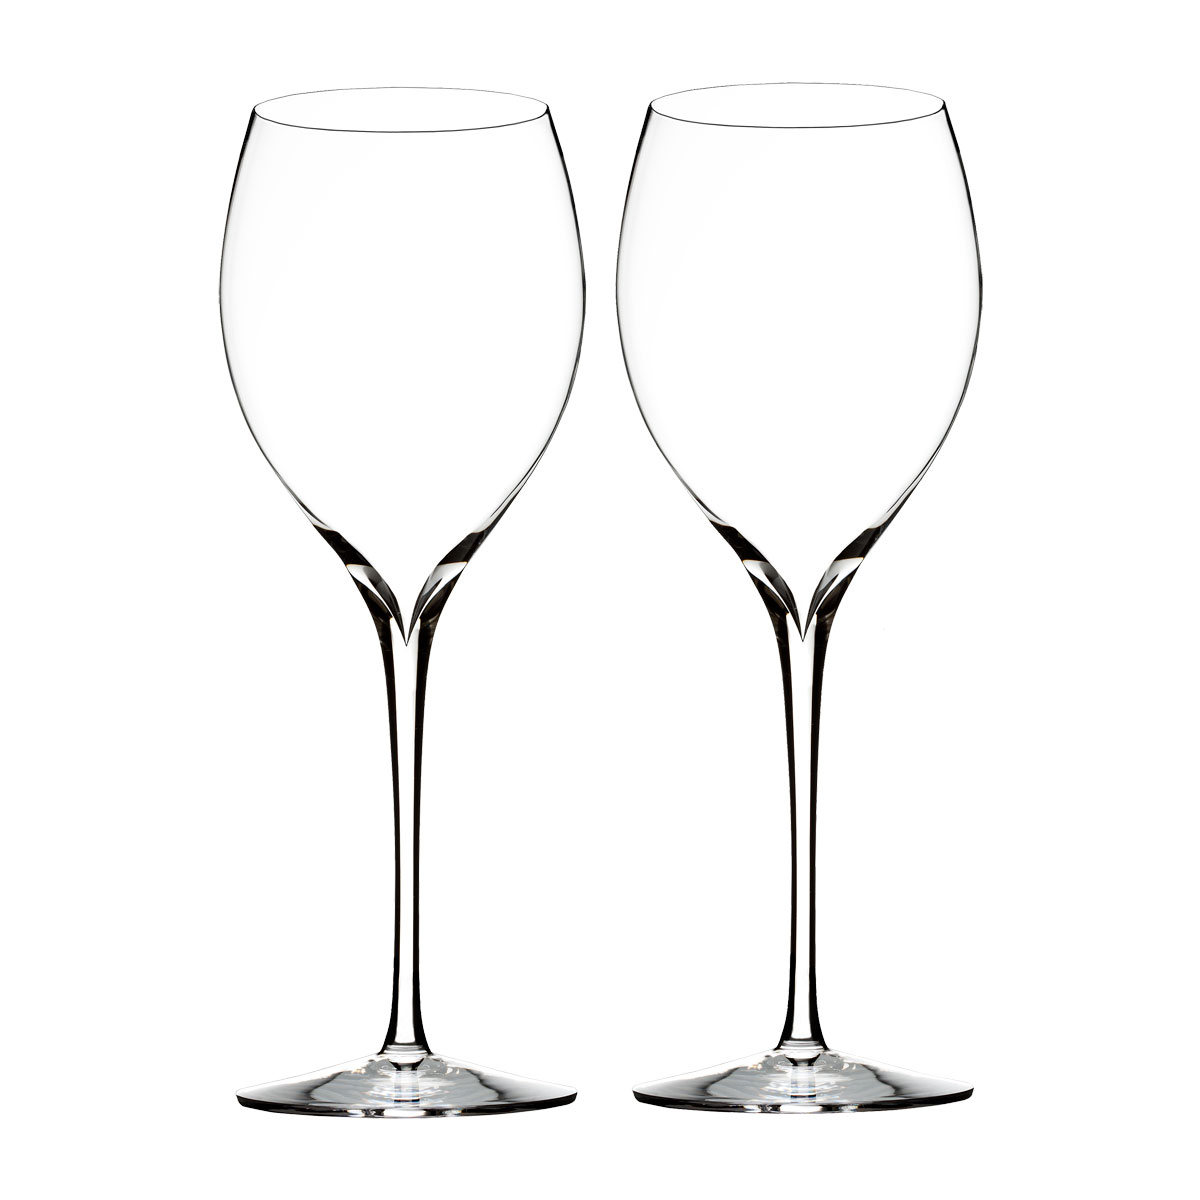 Waterford Crystal, Elegance Chardonnay Wine Glasses, Pair